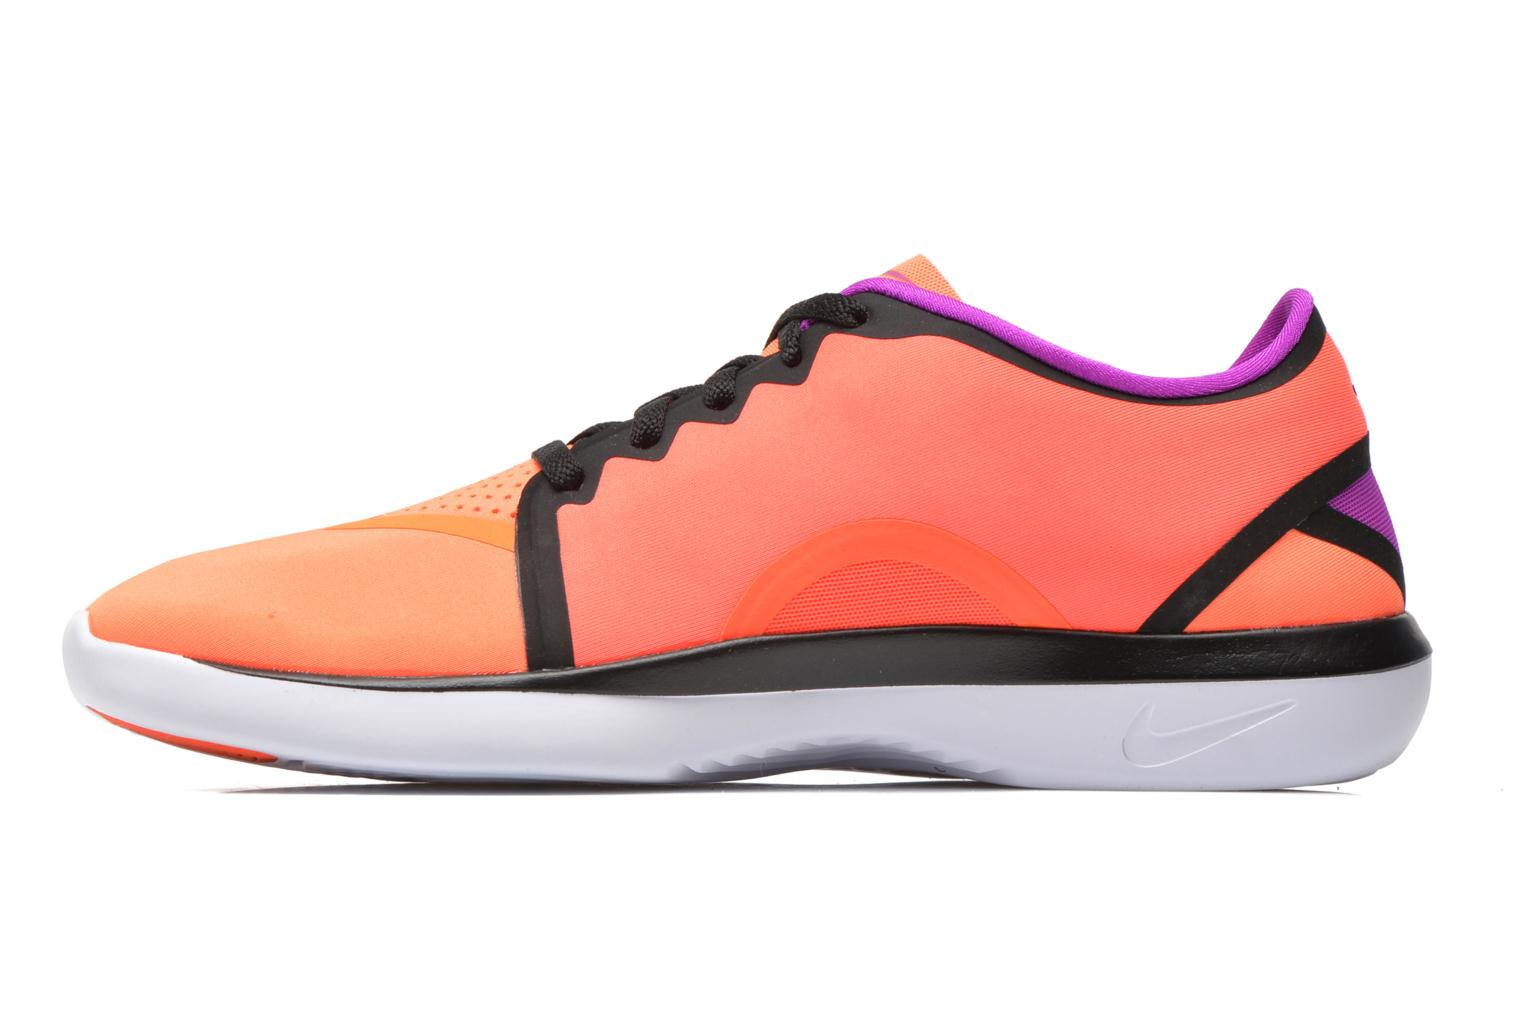 Chaussures de sport Nike Wmns Nike Lunar Sculpt Orange vue face